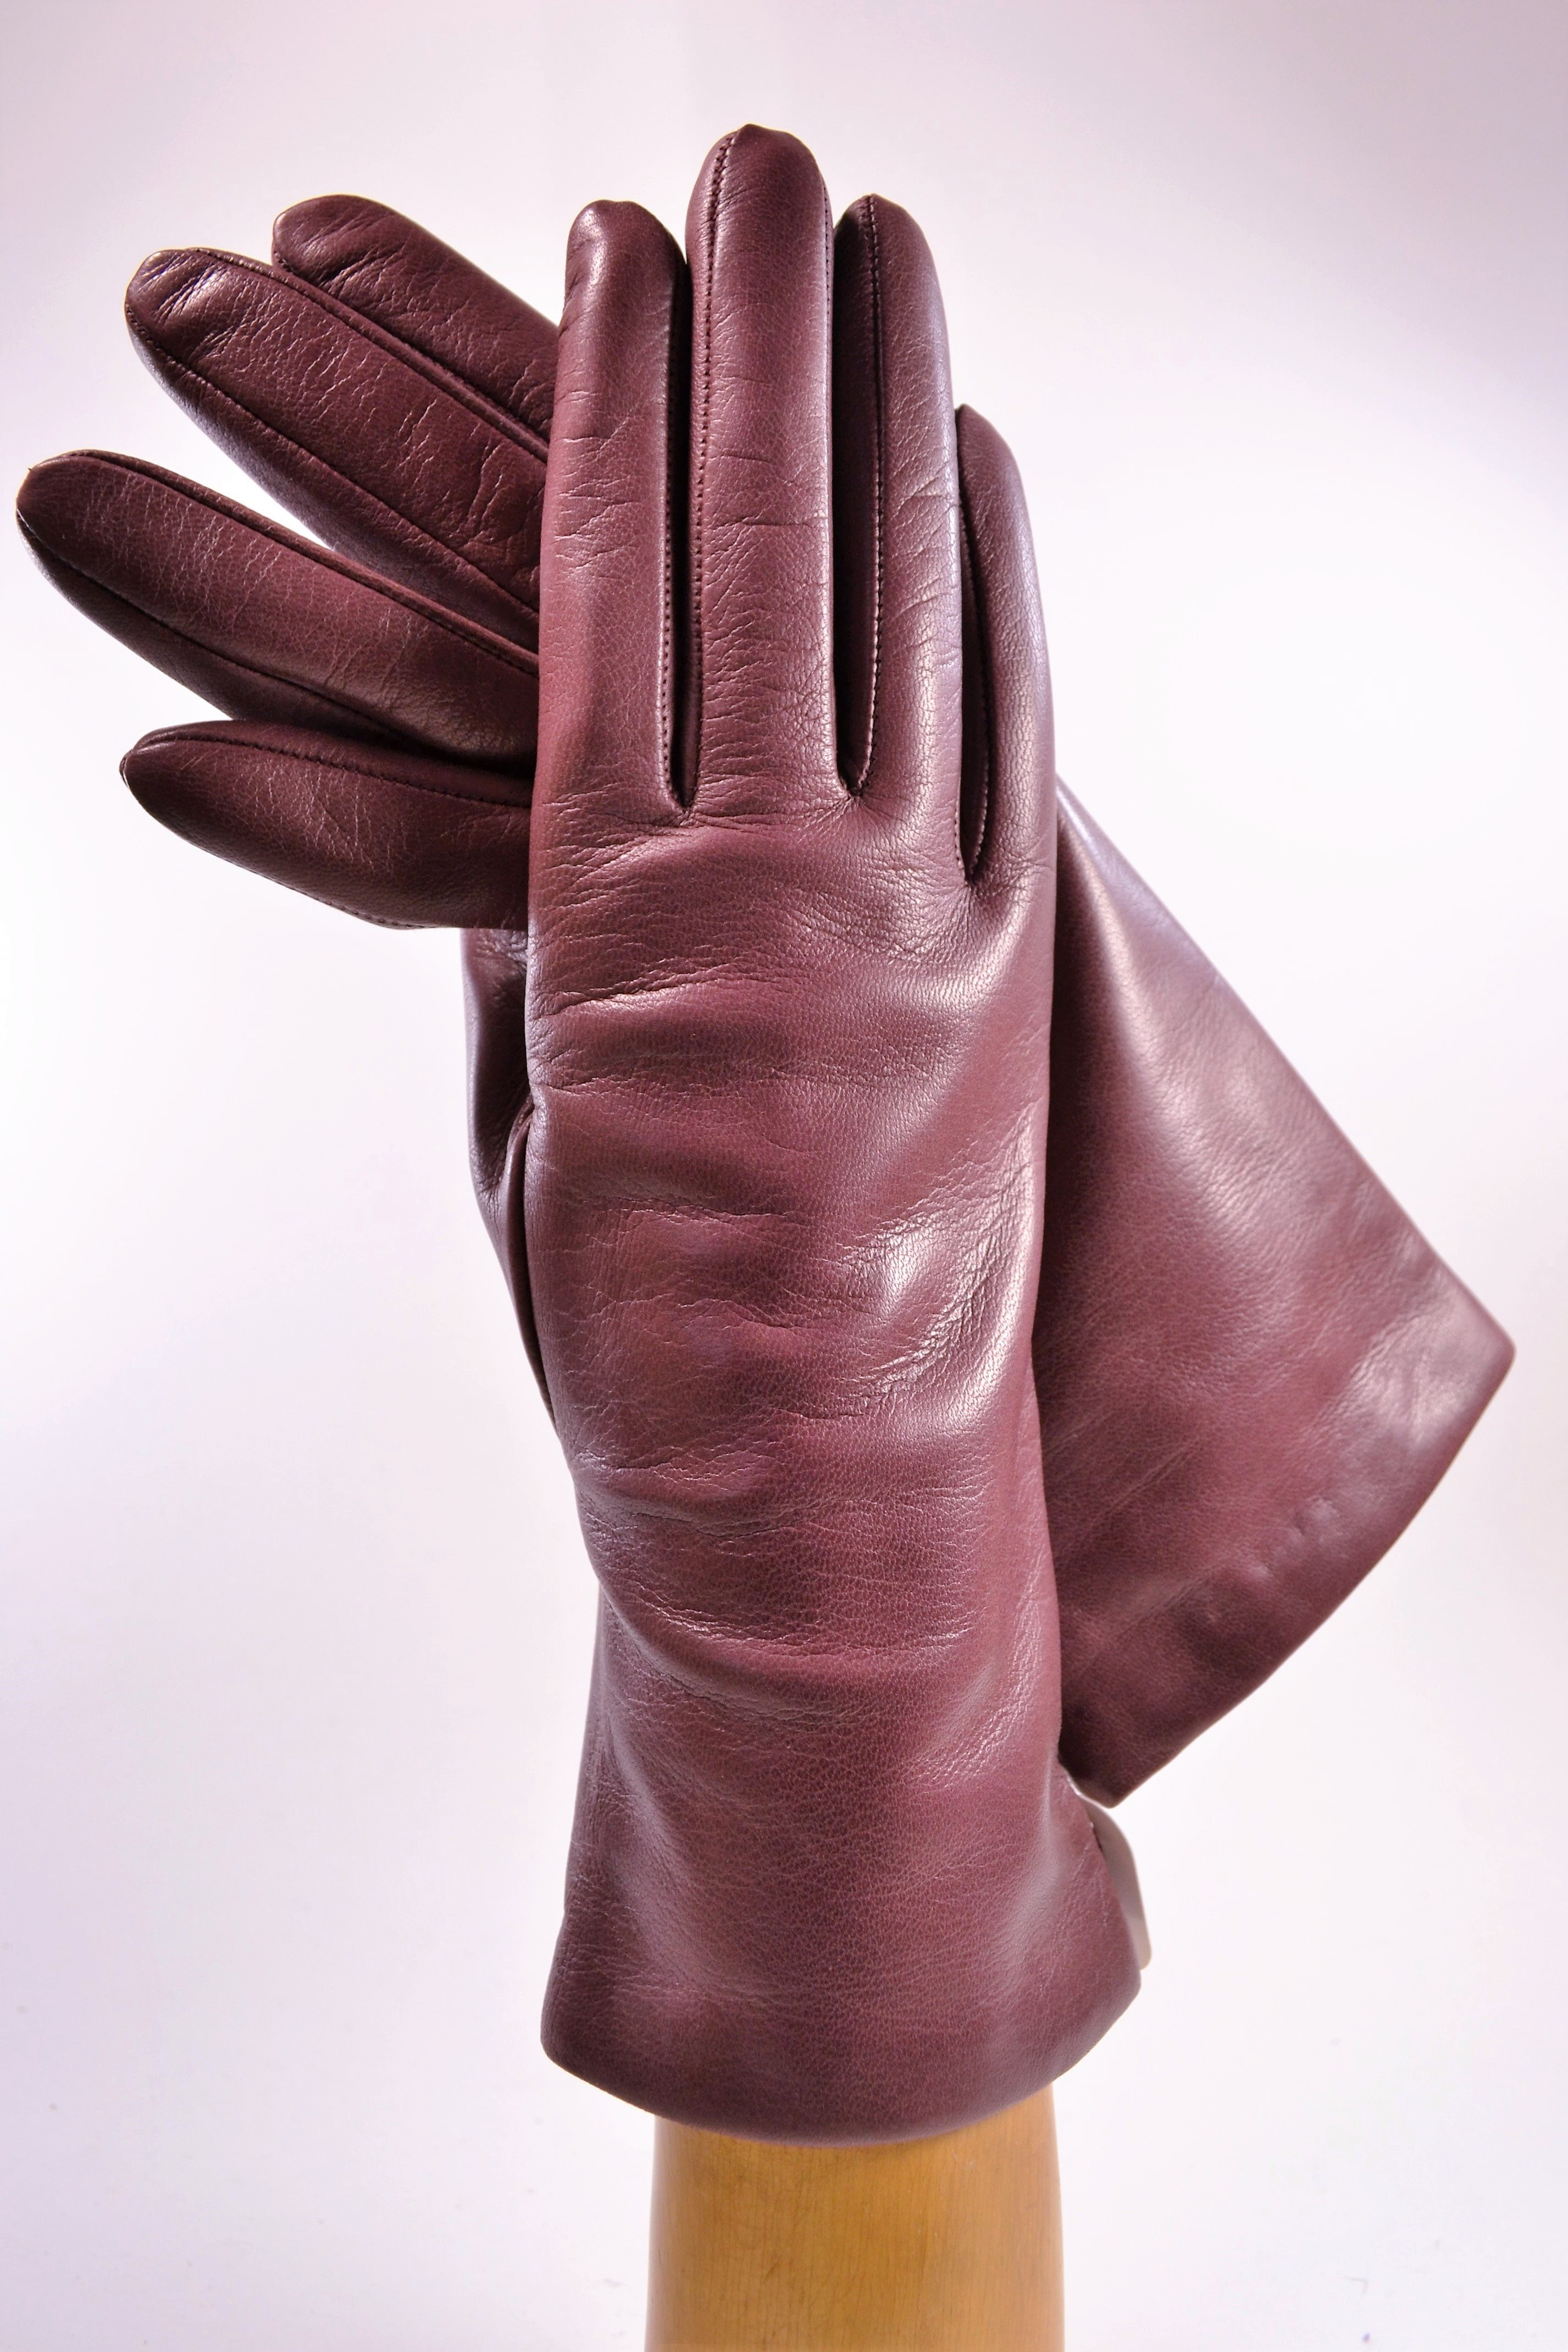 "ladies nappa gloves 3"", cashmere lined, old rose"